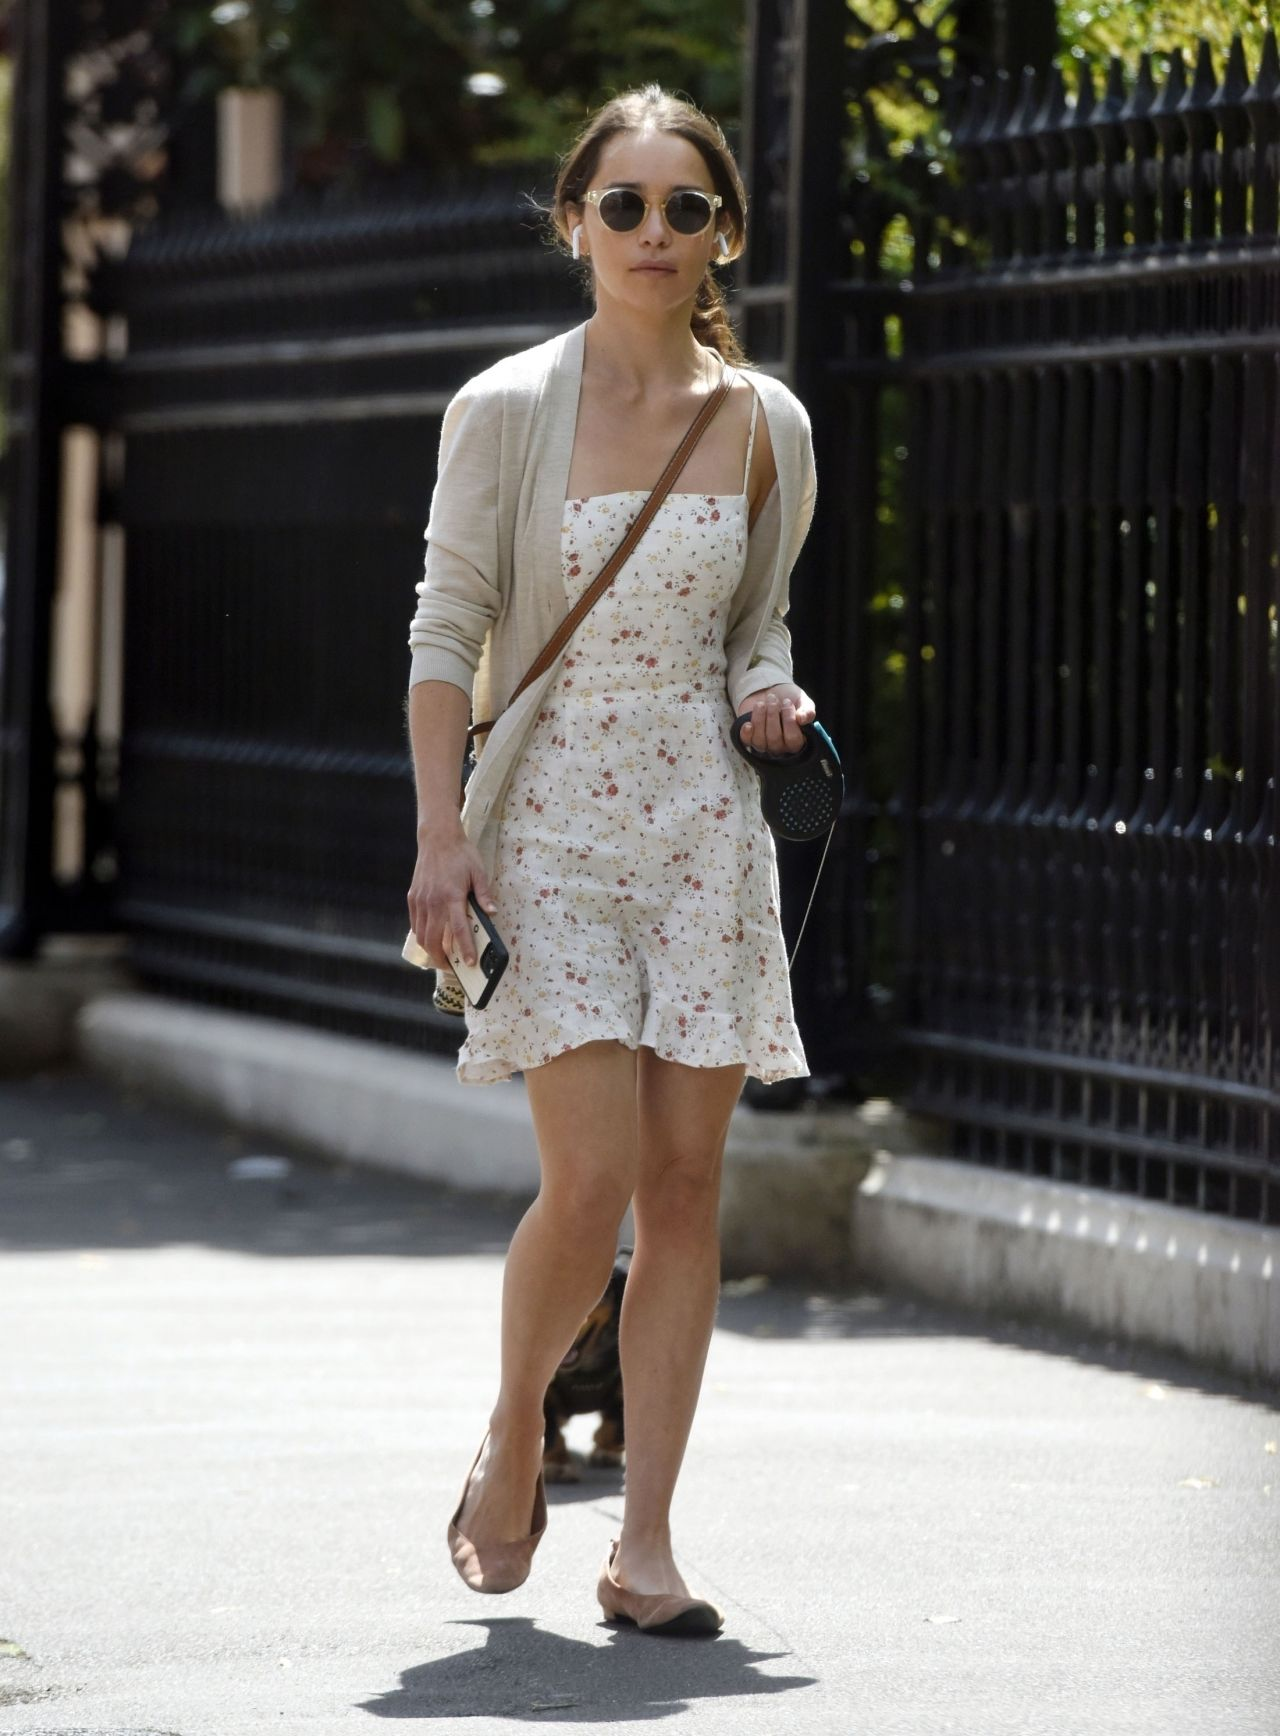 emilia-clarke-in-reformation-dress-the-row-out-in-london-07-15-2020